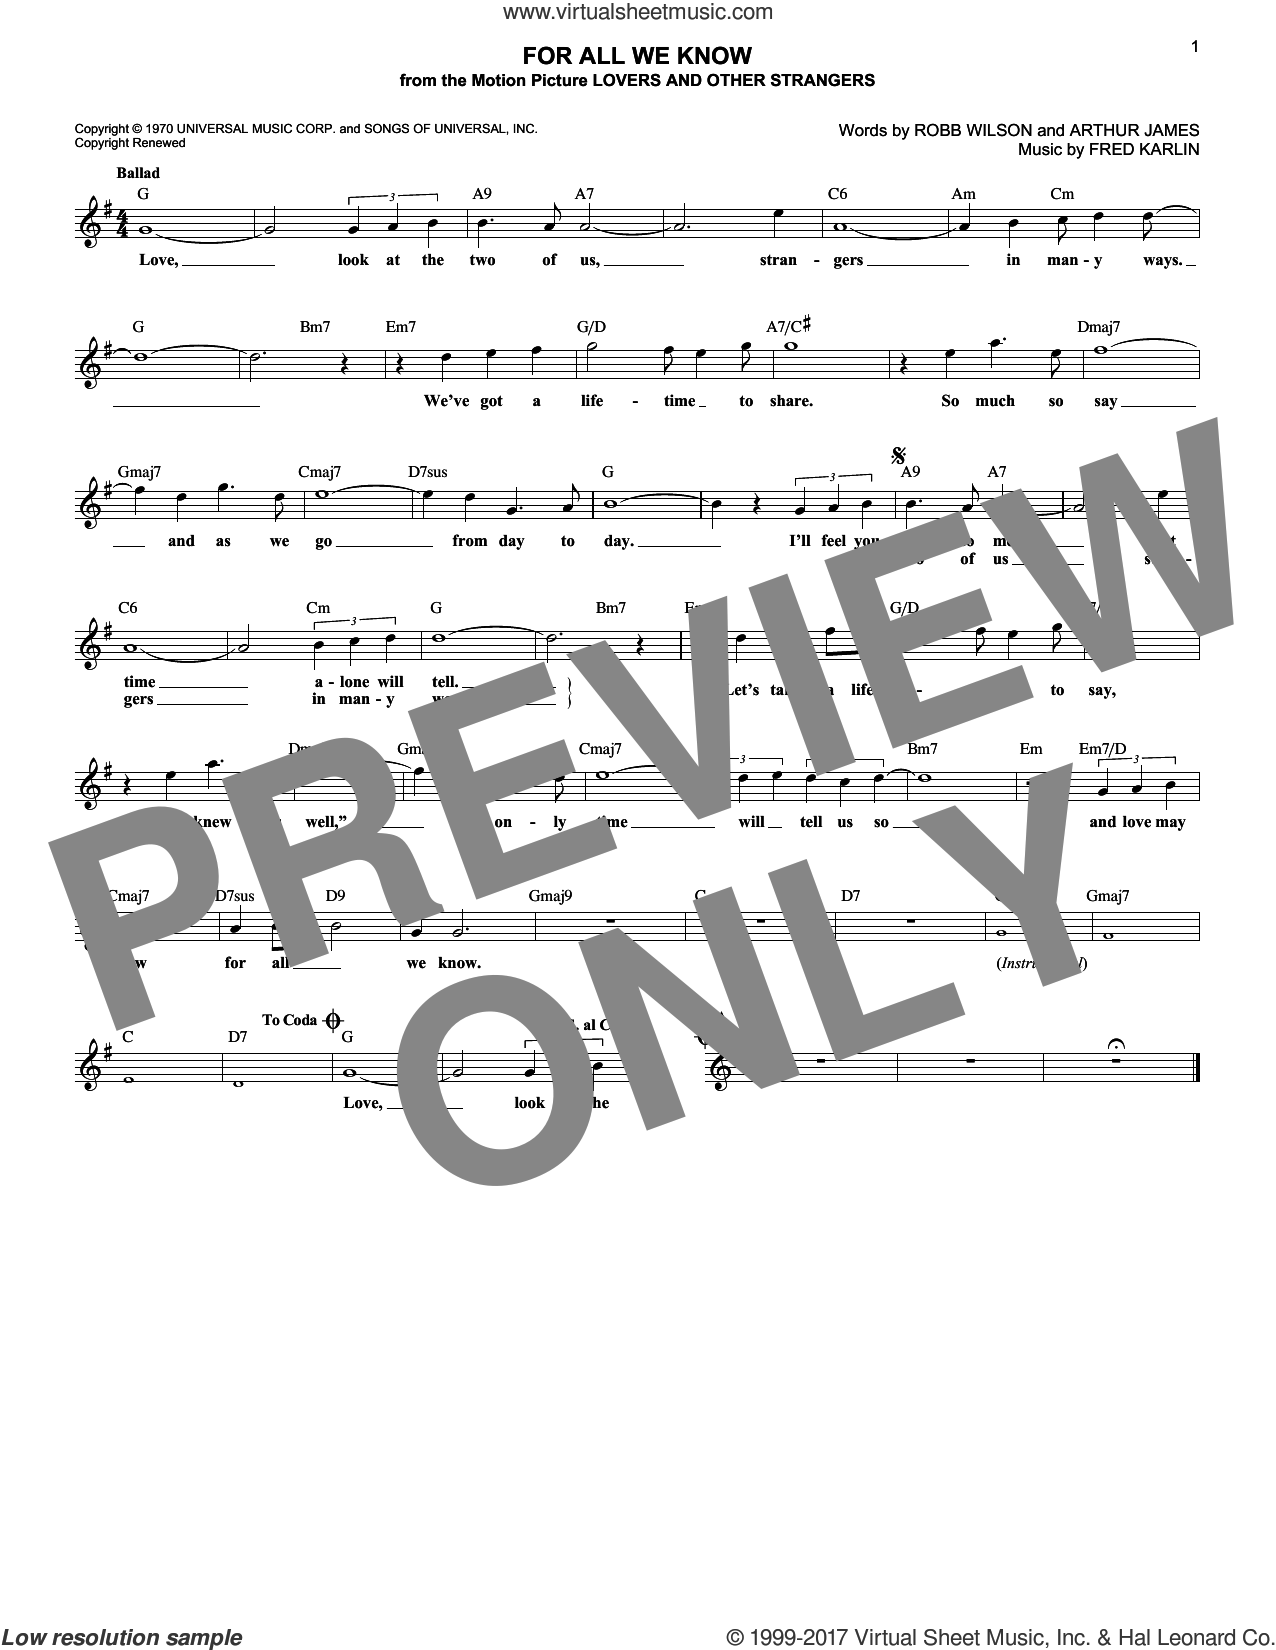 For All We Know sheet music for voice and other instruments (fake book) by Carpenters, Fred Karlin, James Griffin and Robb Wilson, intermediate skill level